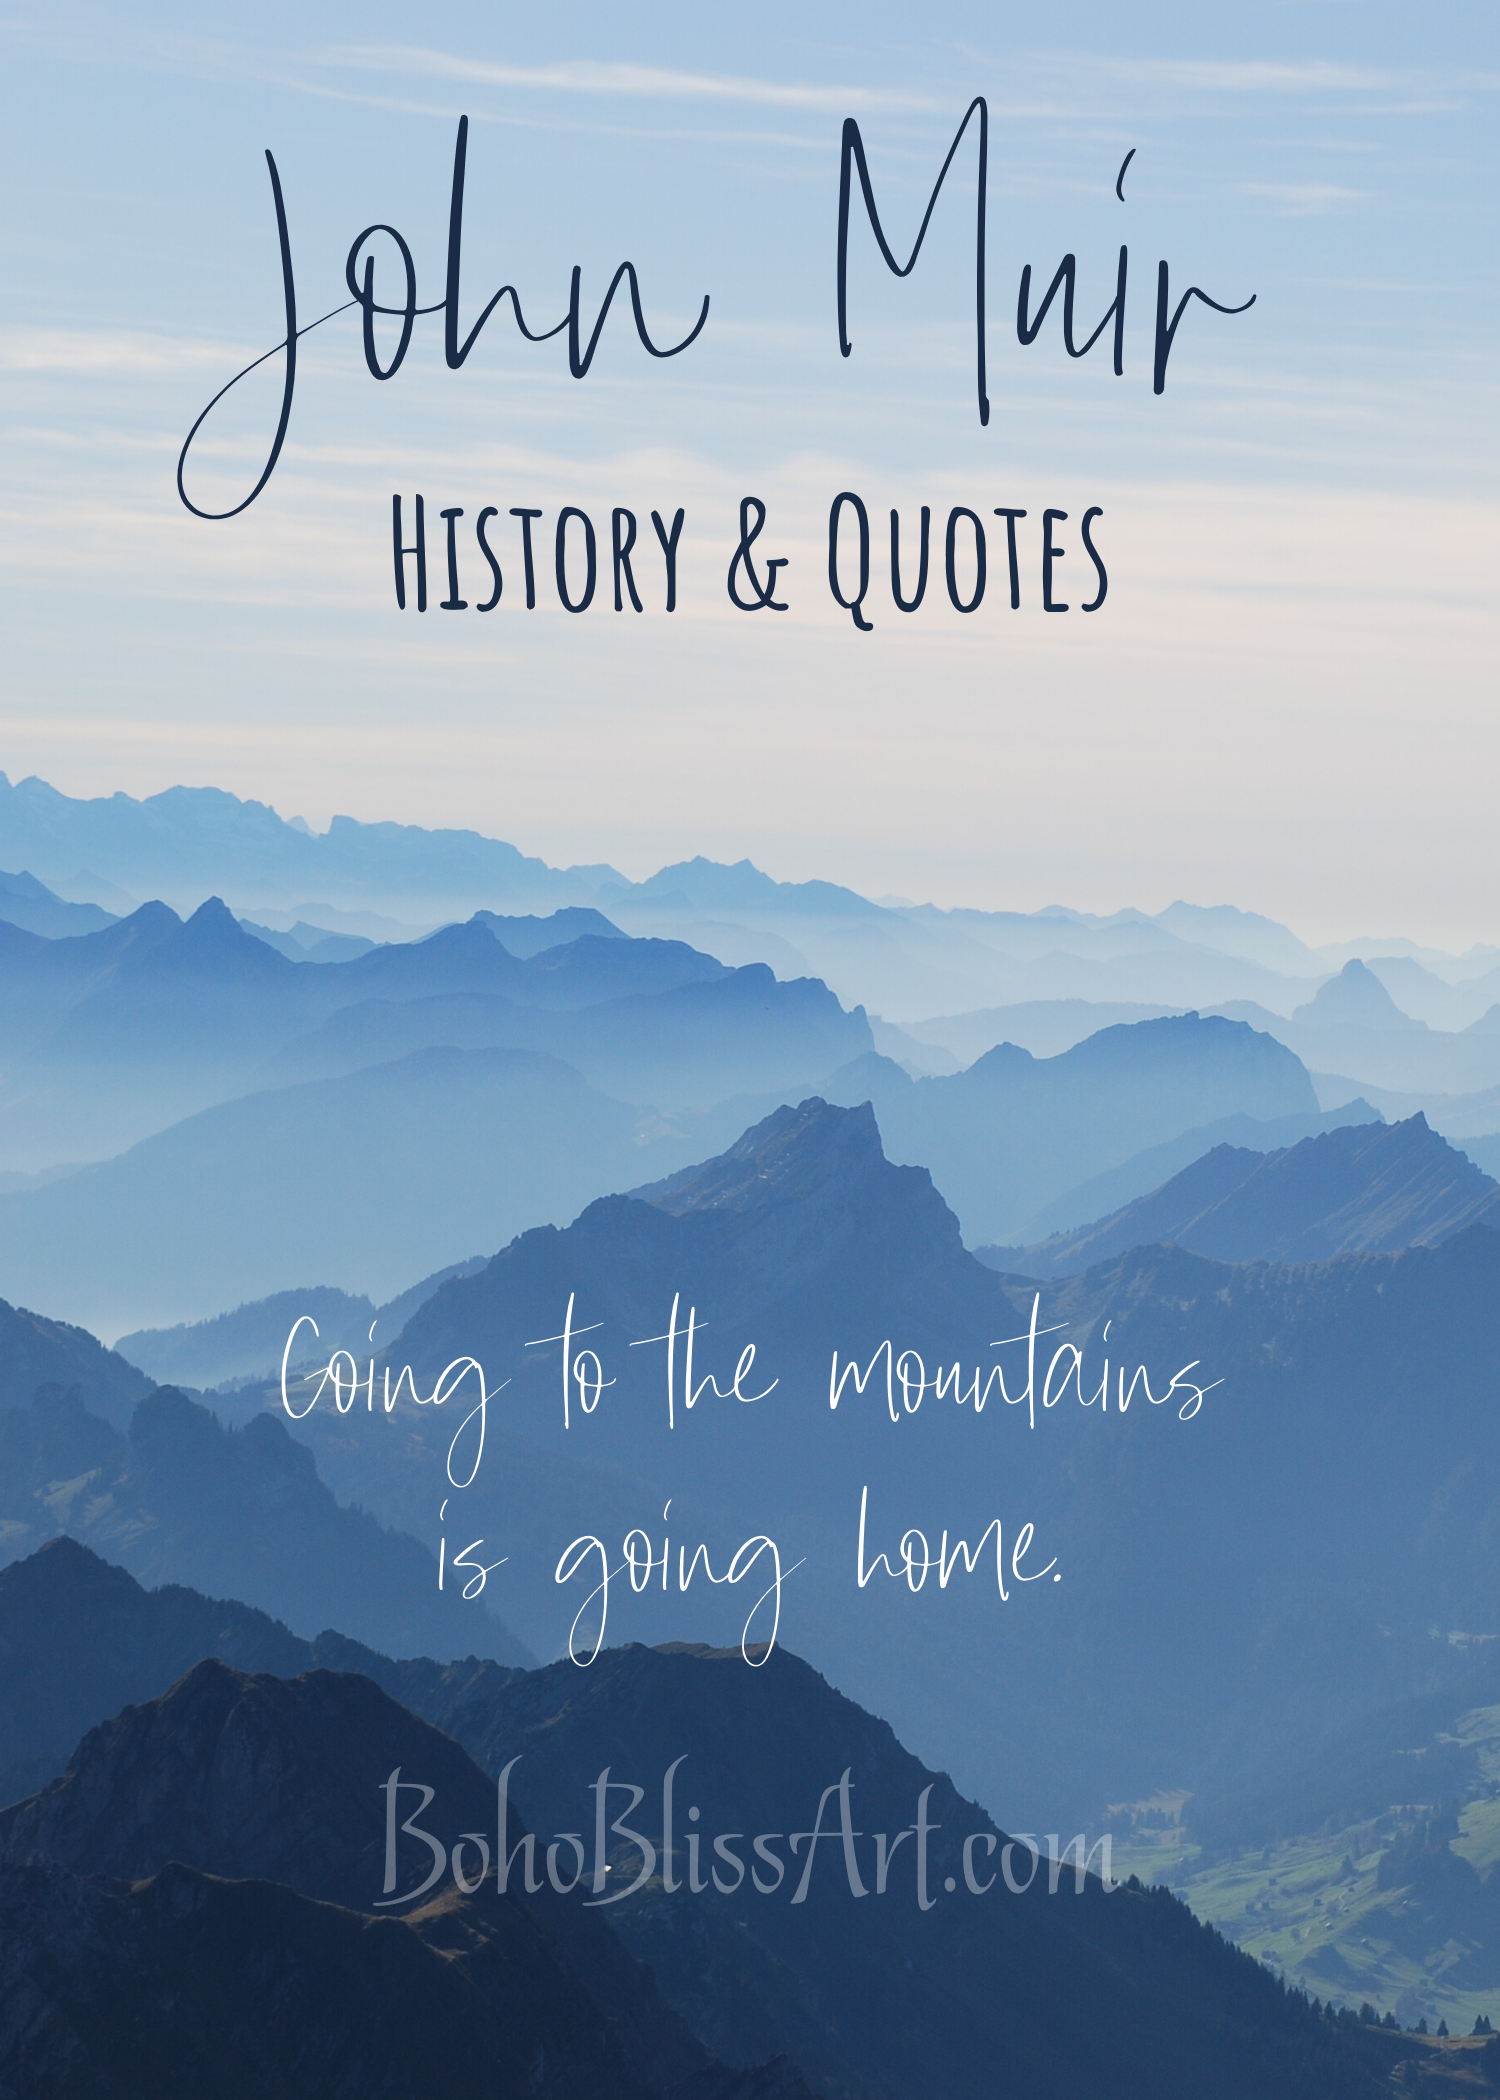 Quotes By John Of The Mountains In 2020 Spiritual Experience John Empowerment Quotes